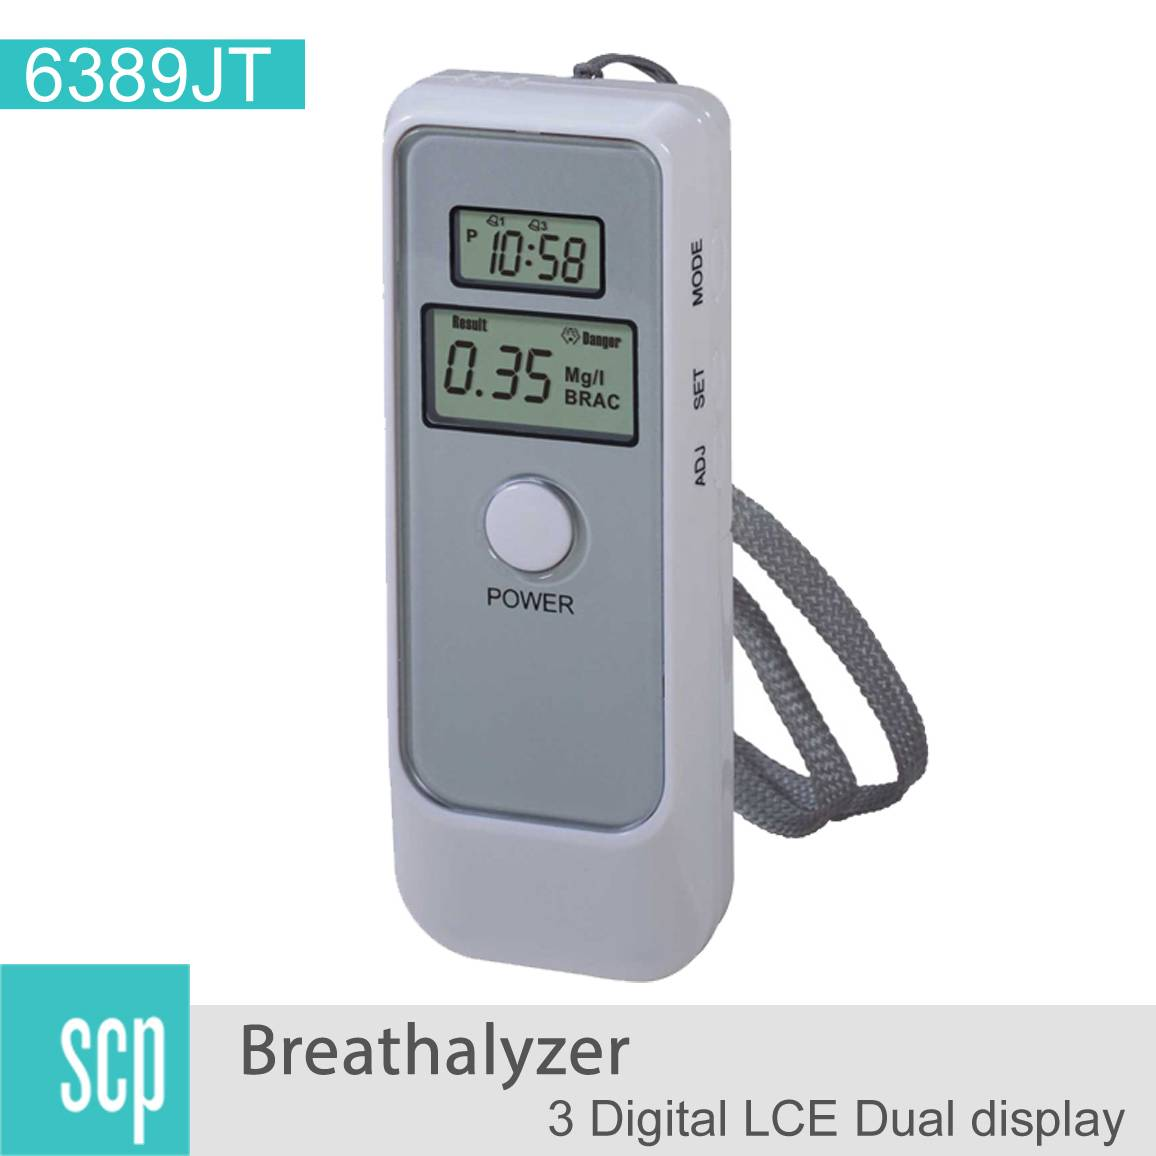 breath alcohol tester breathalyzer with clock-6389